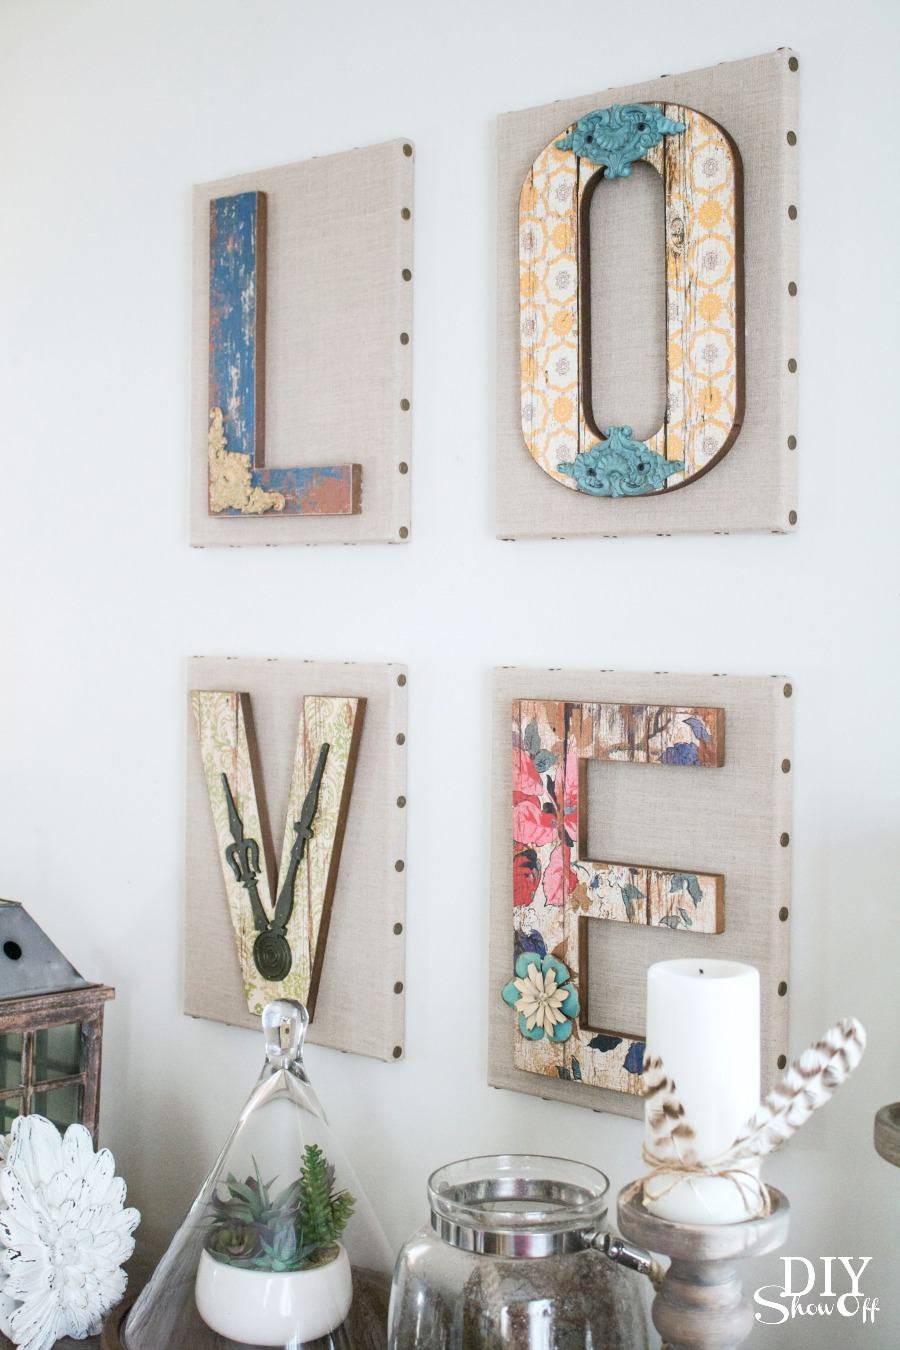 Diyshowoff 2016 review diy show off diy decorating for Homemade wall letters